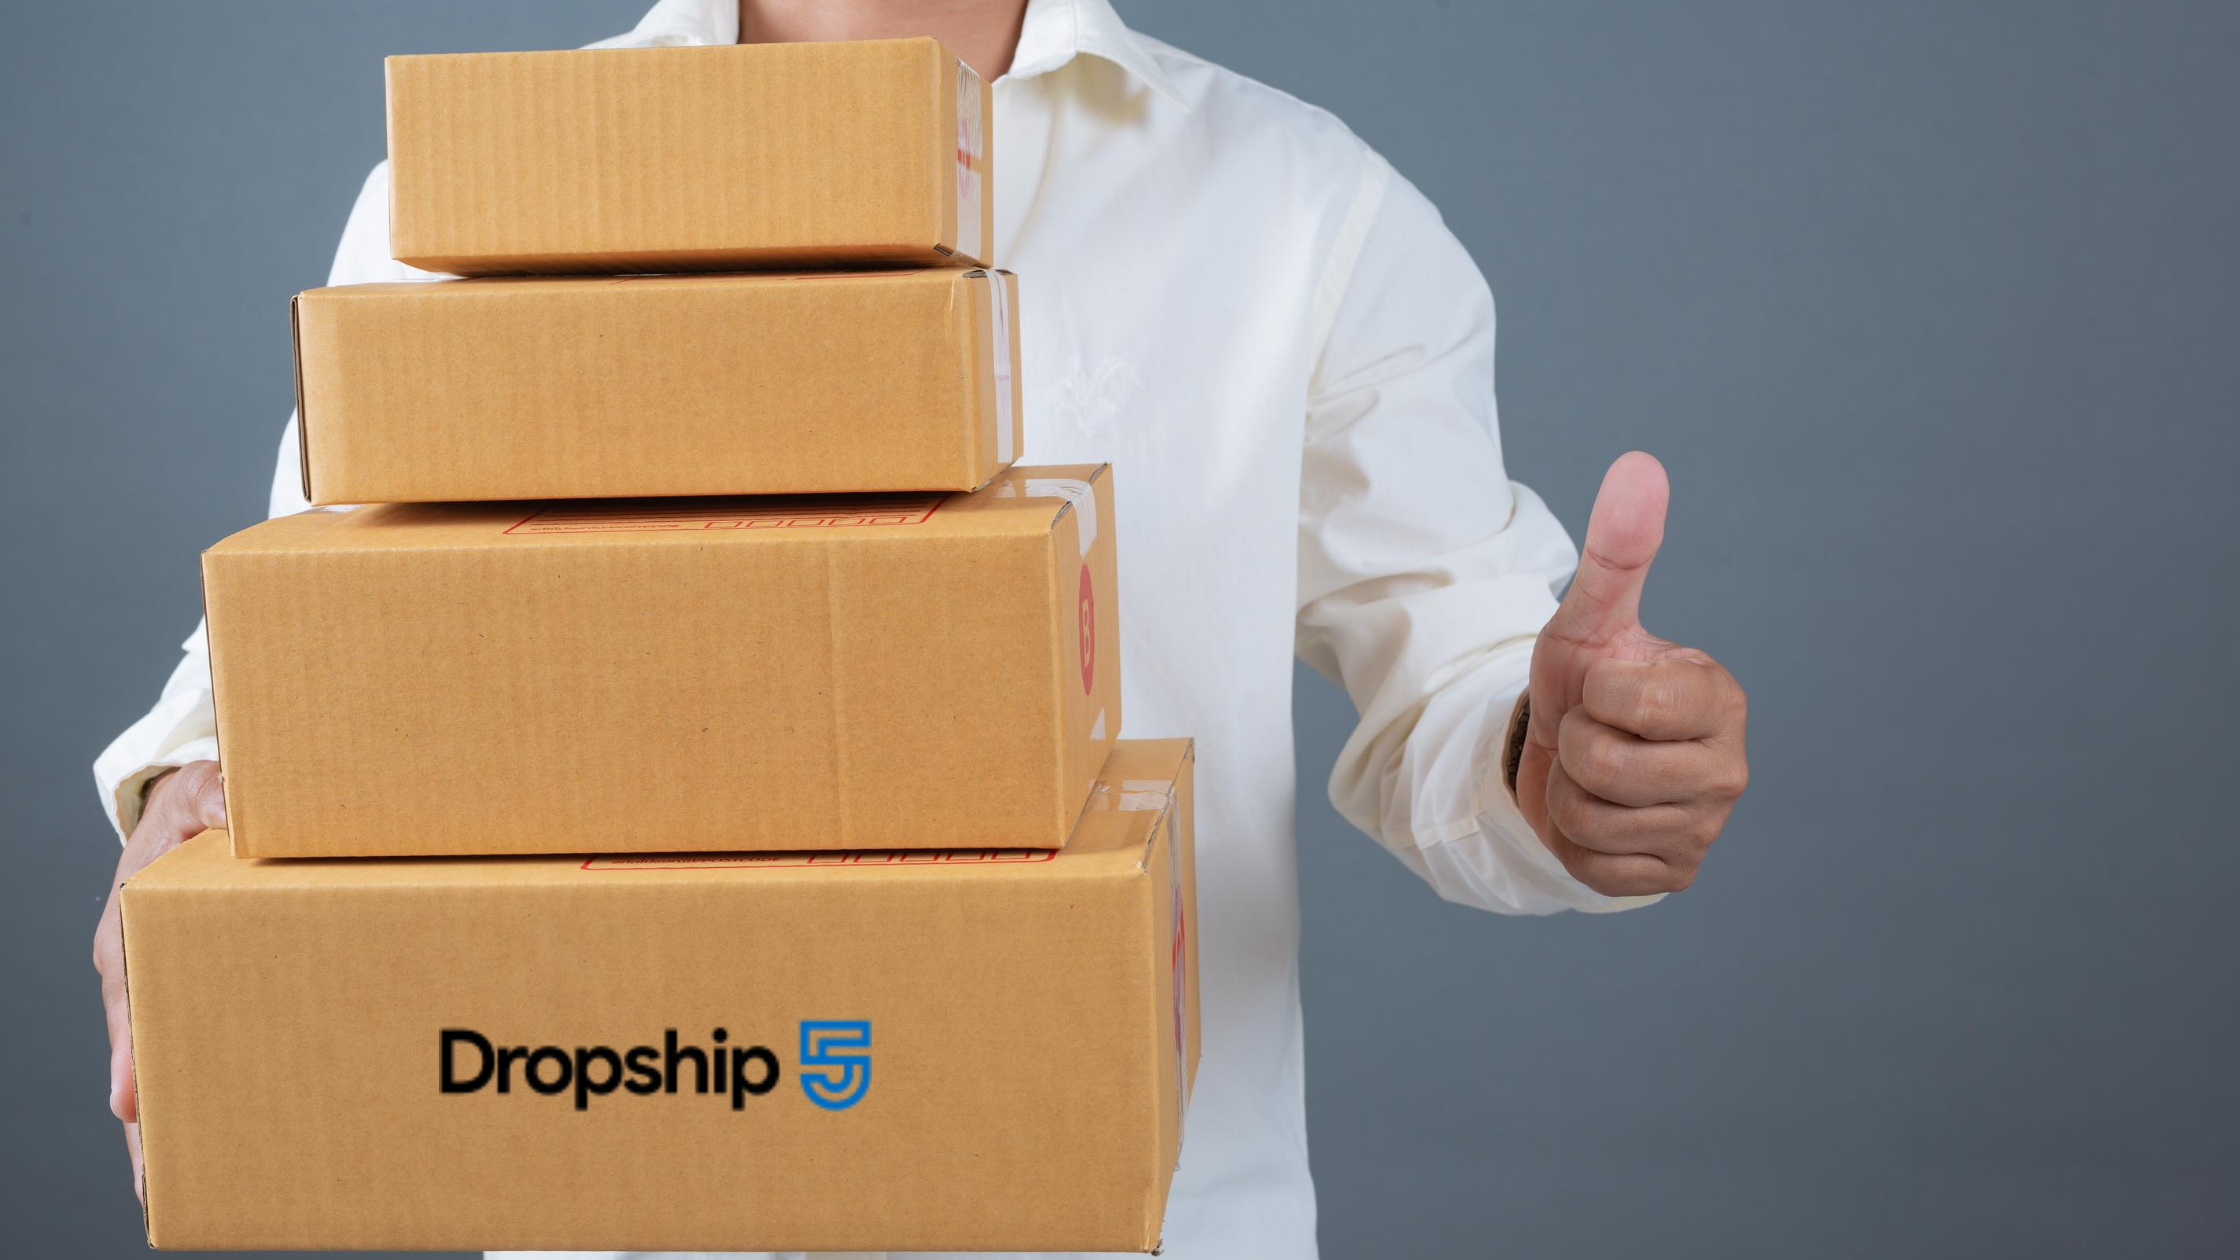 finding dropshipping suppliers